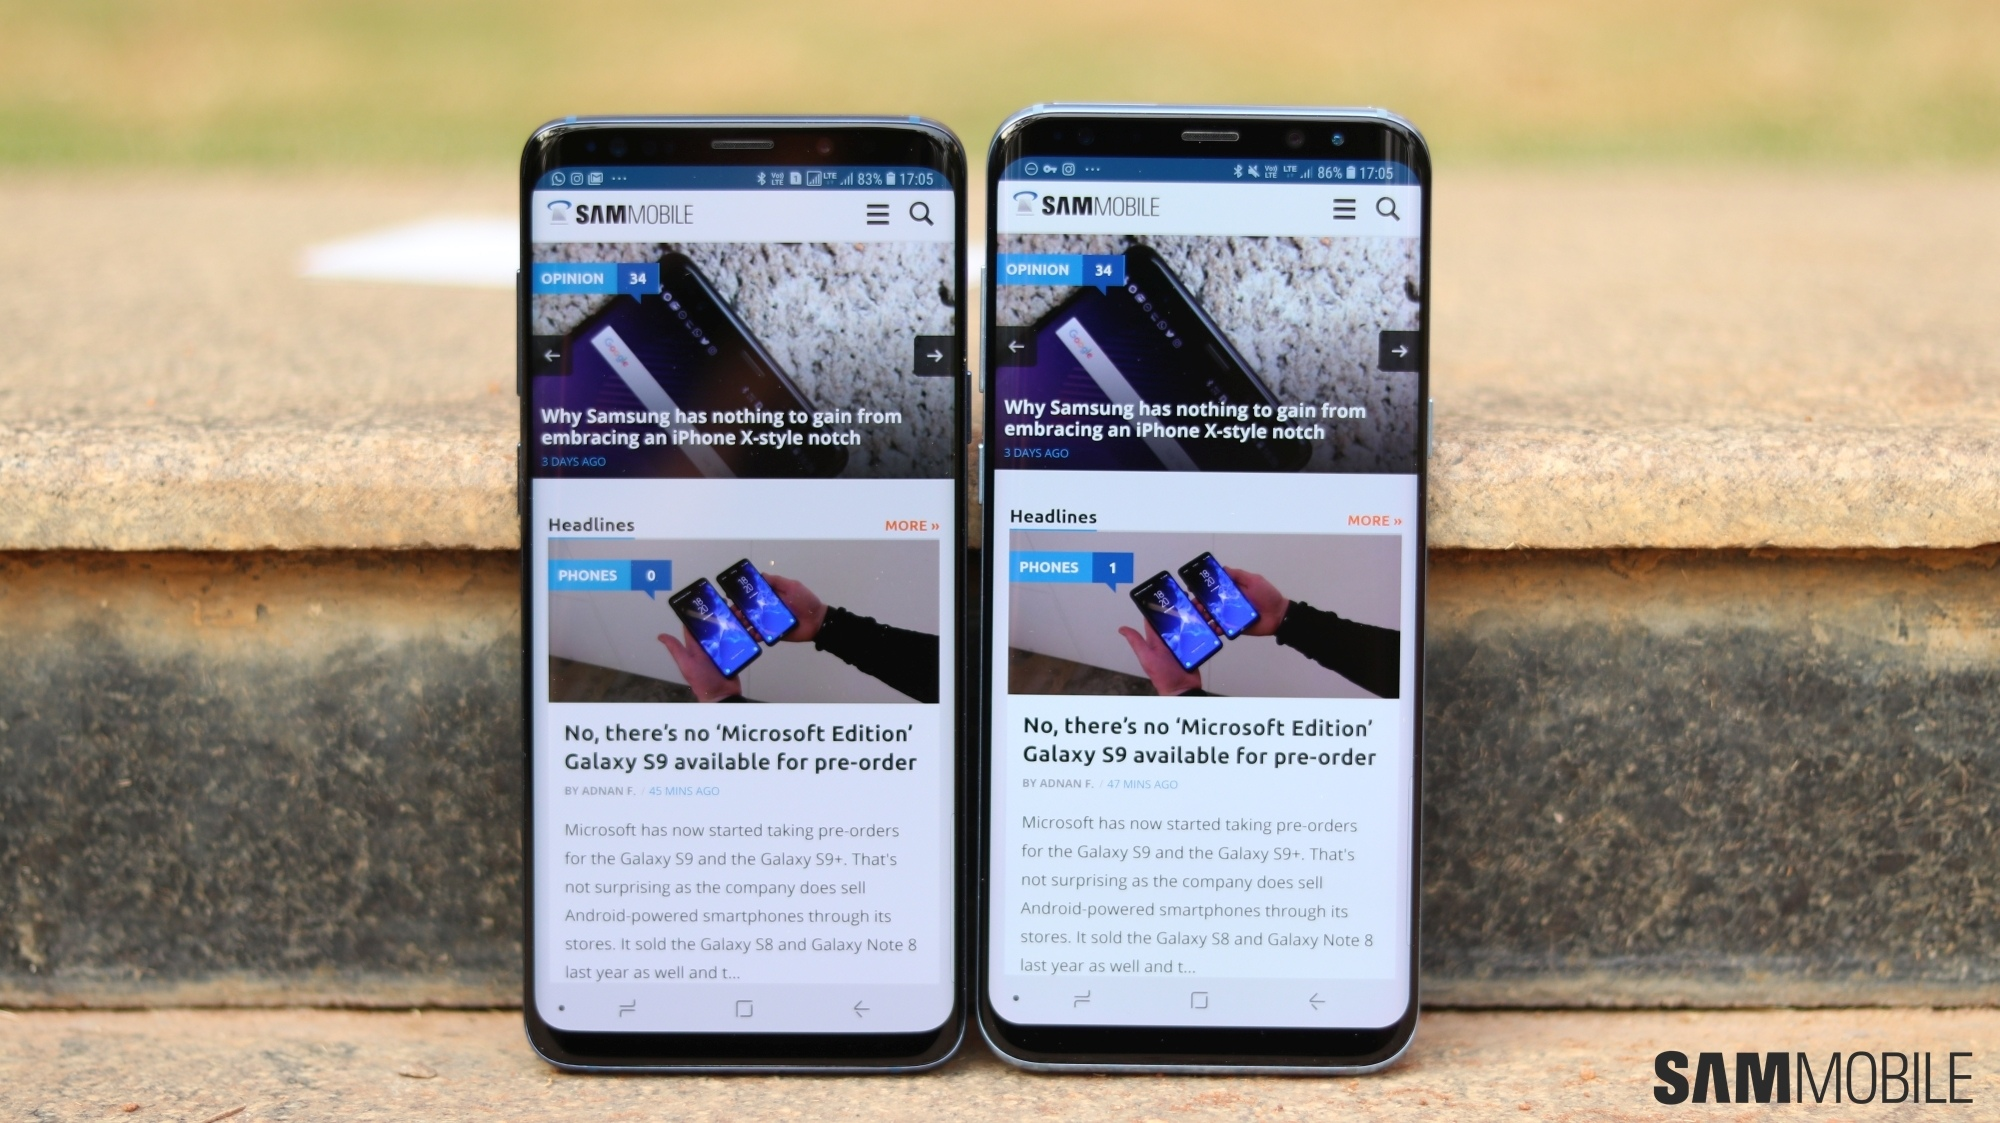 Samsung Galaxy S9 vs Galaxy S8: Side-by-side pictures